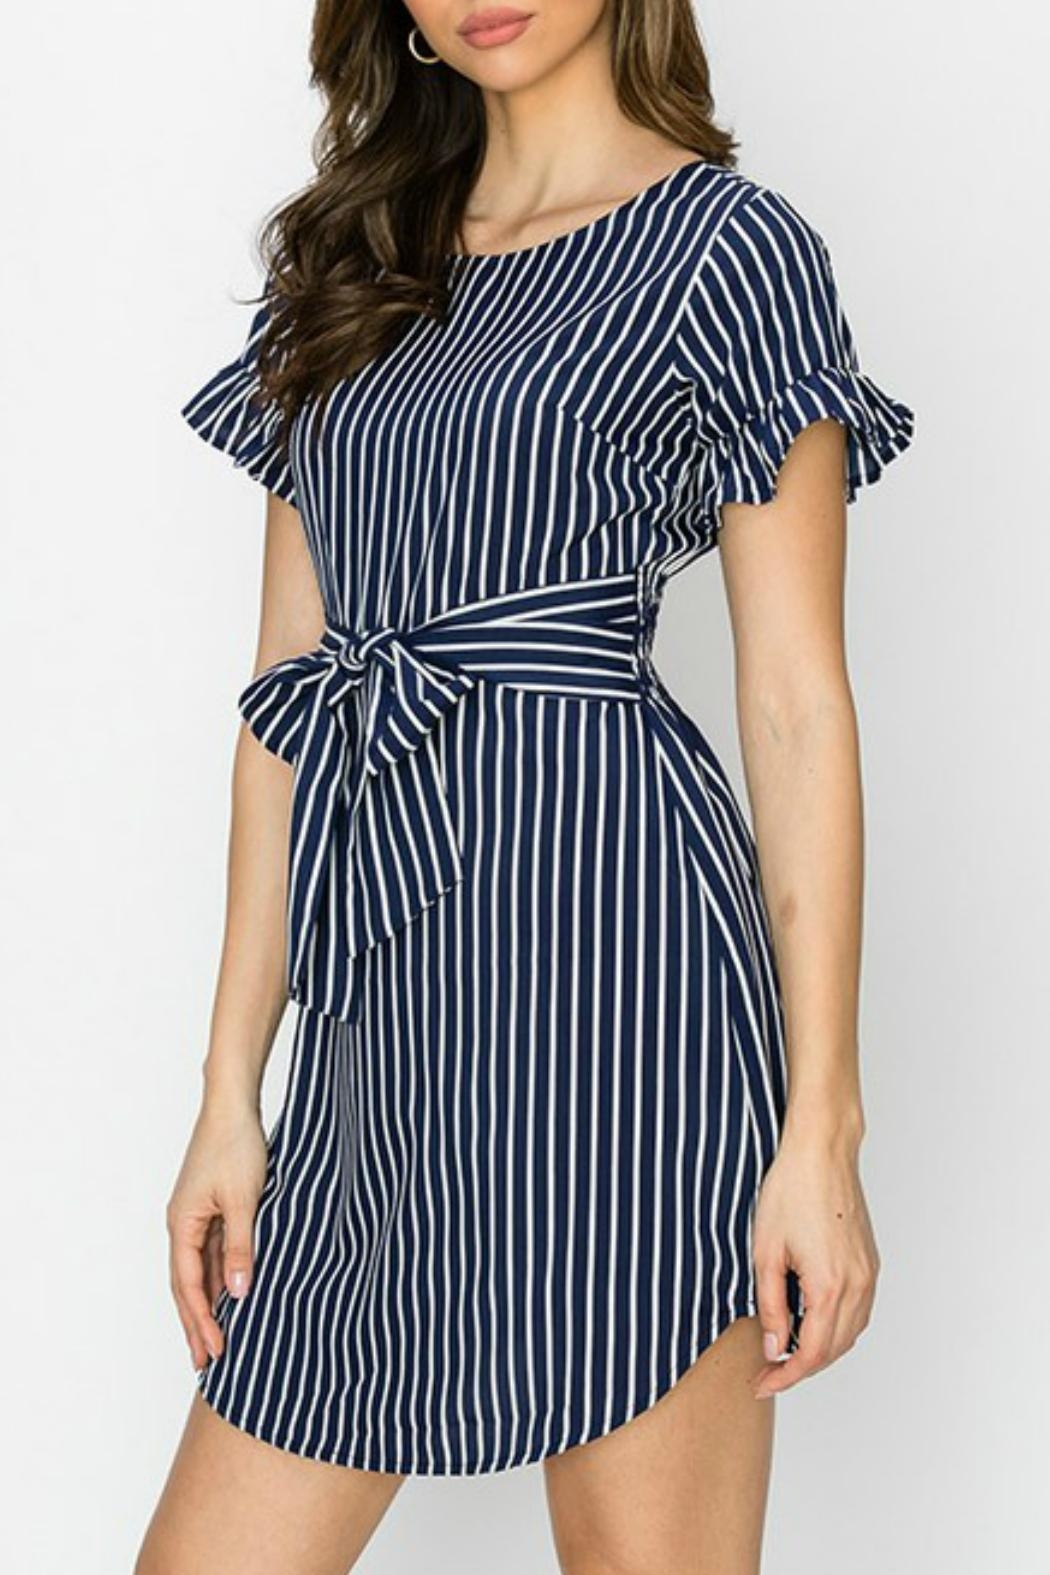 ALB Anchorage Stripe Ruffle-Sleeve Dress - Side Cropped Image